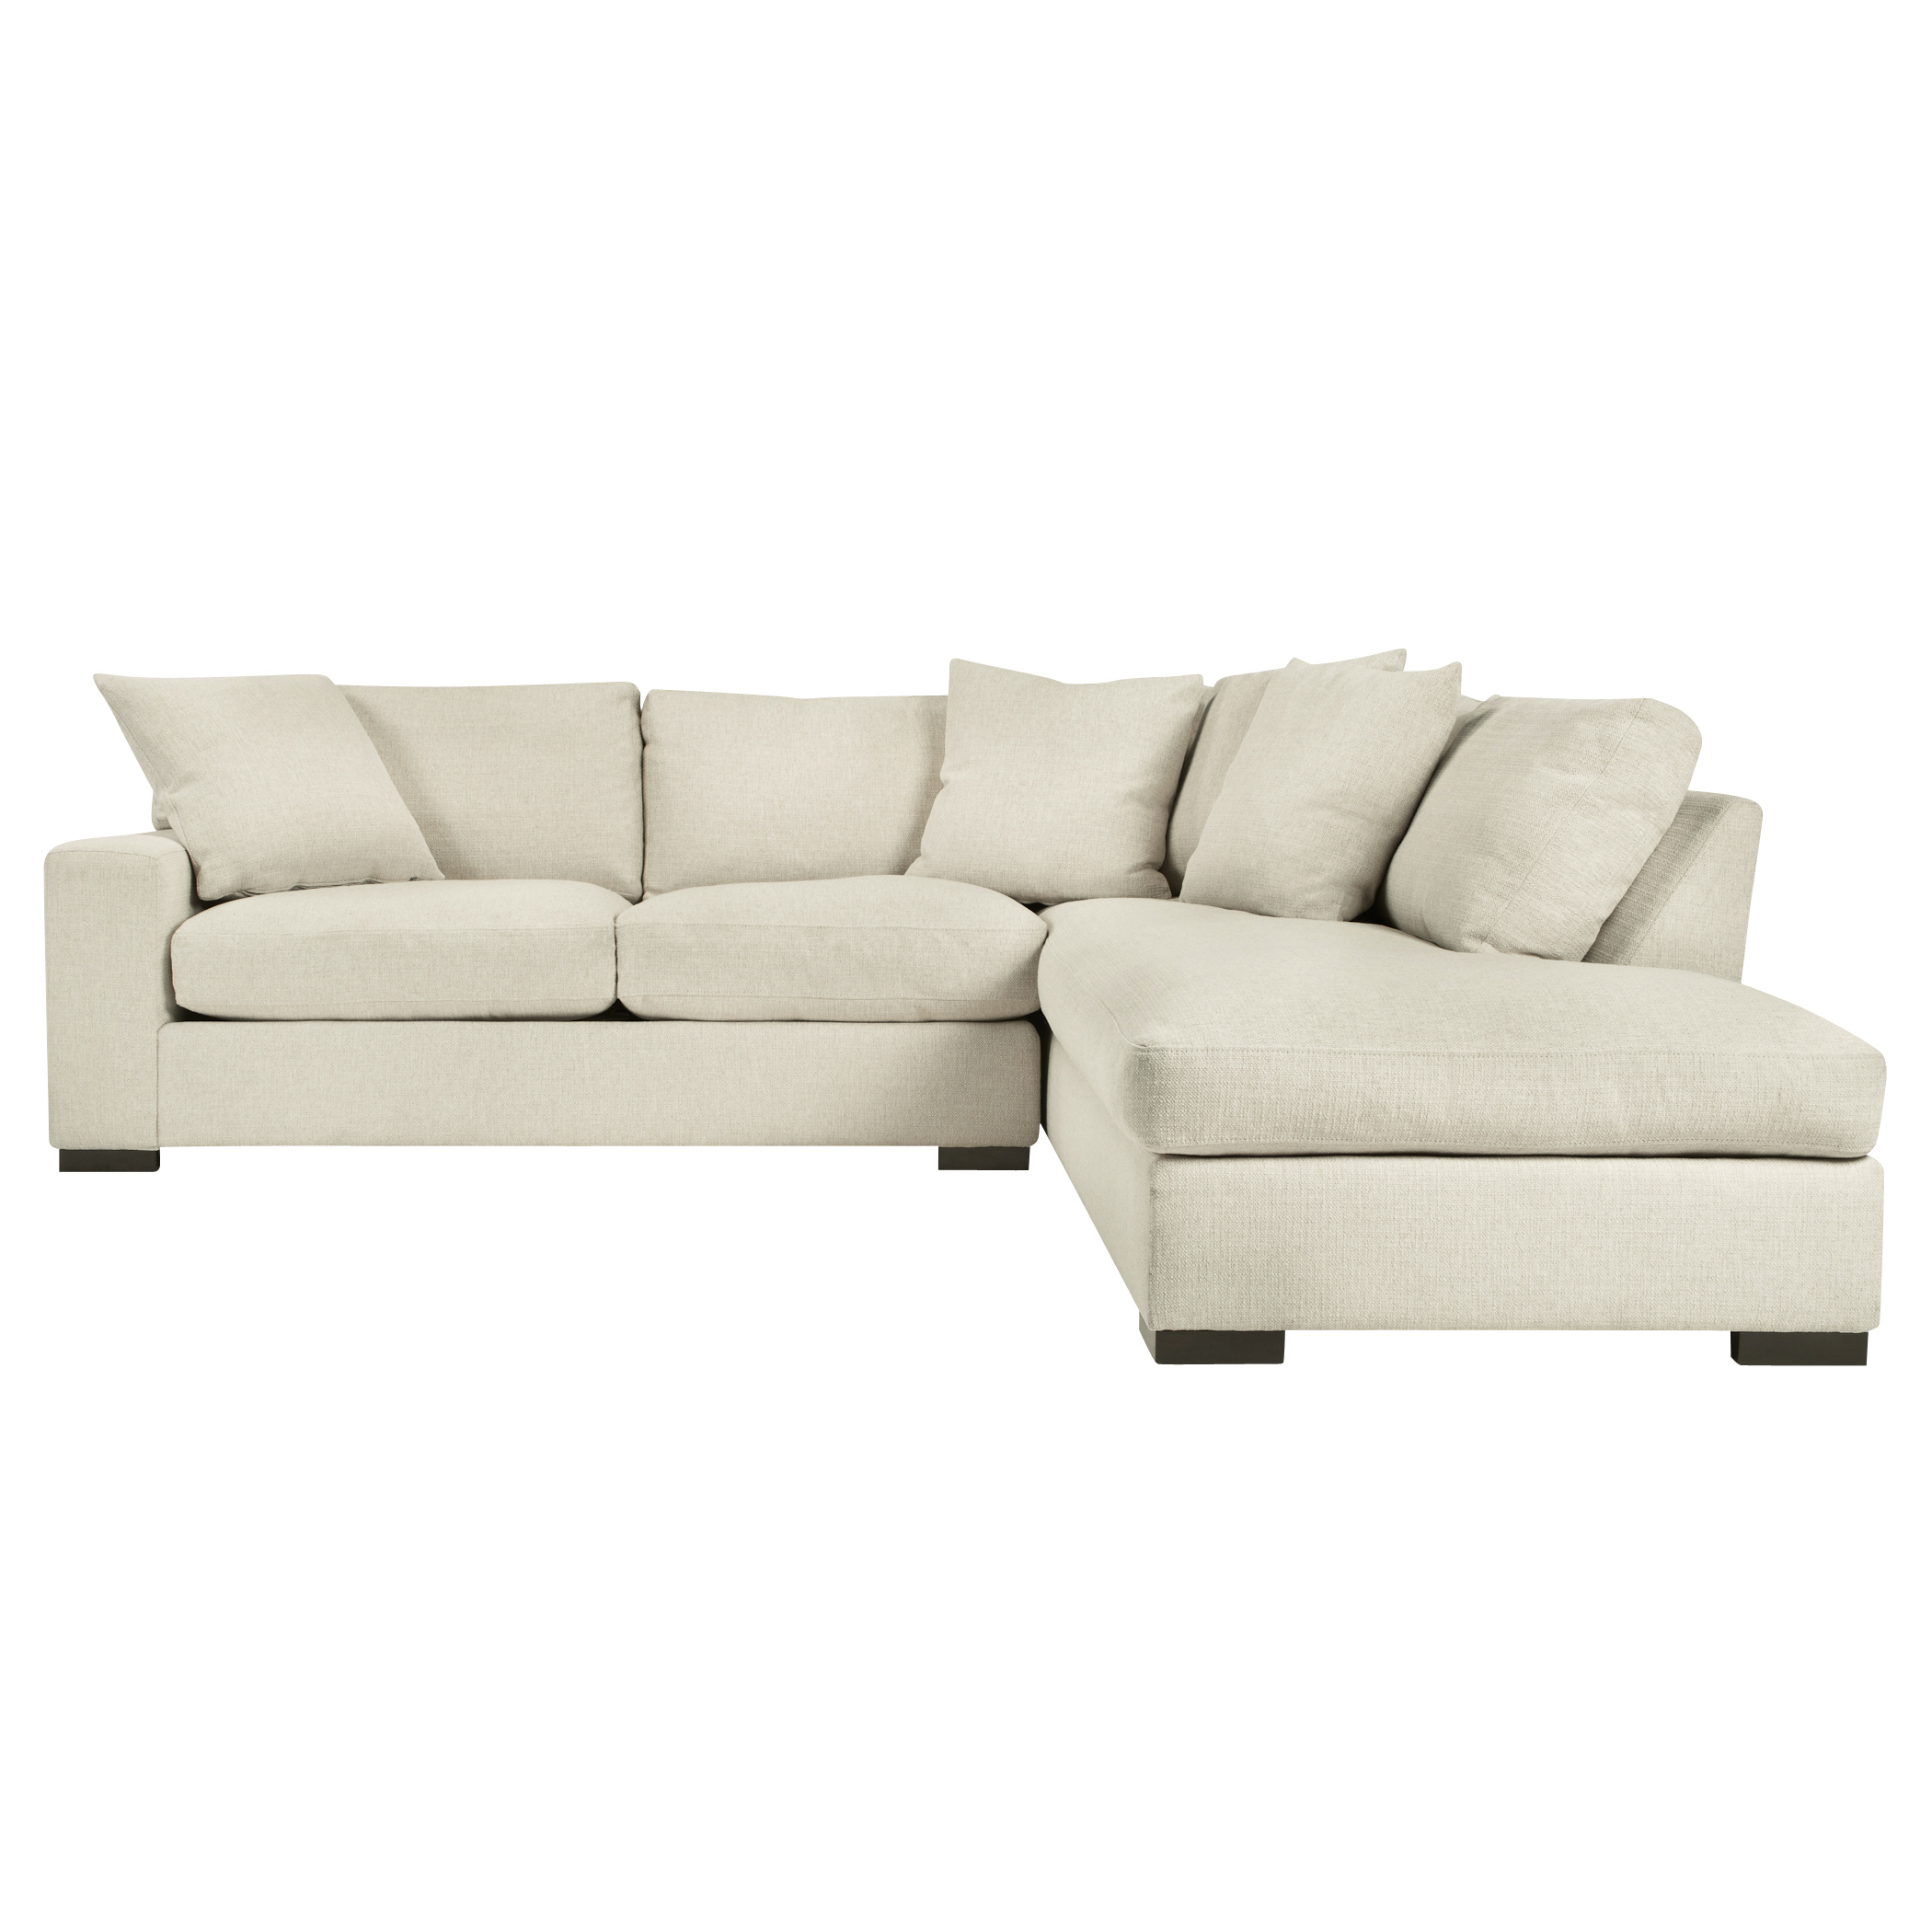 Del Mar Sectional Sofa Chic